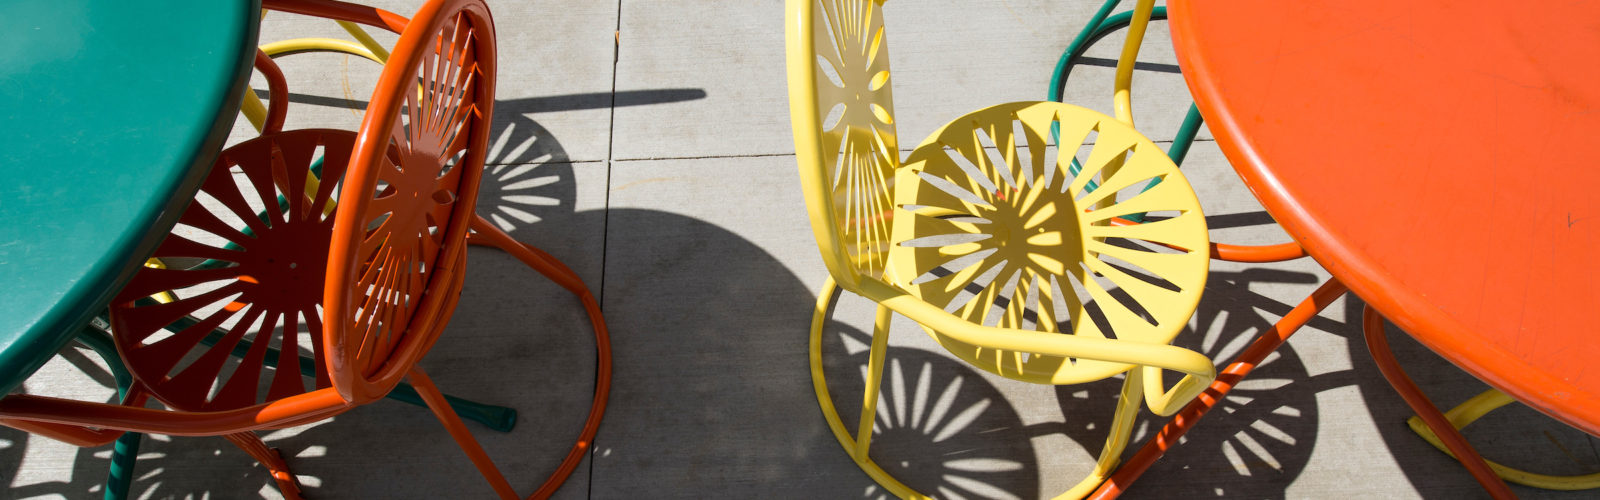 Shadows are cast from sun shining upon a group of Memorial Union Terrace chairs and tables at the University of Wisconsin-Madison during summer on July 1, 2014. The chairs are known for their iconic sunburst design. (Photo by Jeff Miller/UW-Madison)